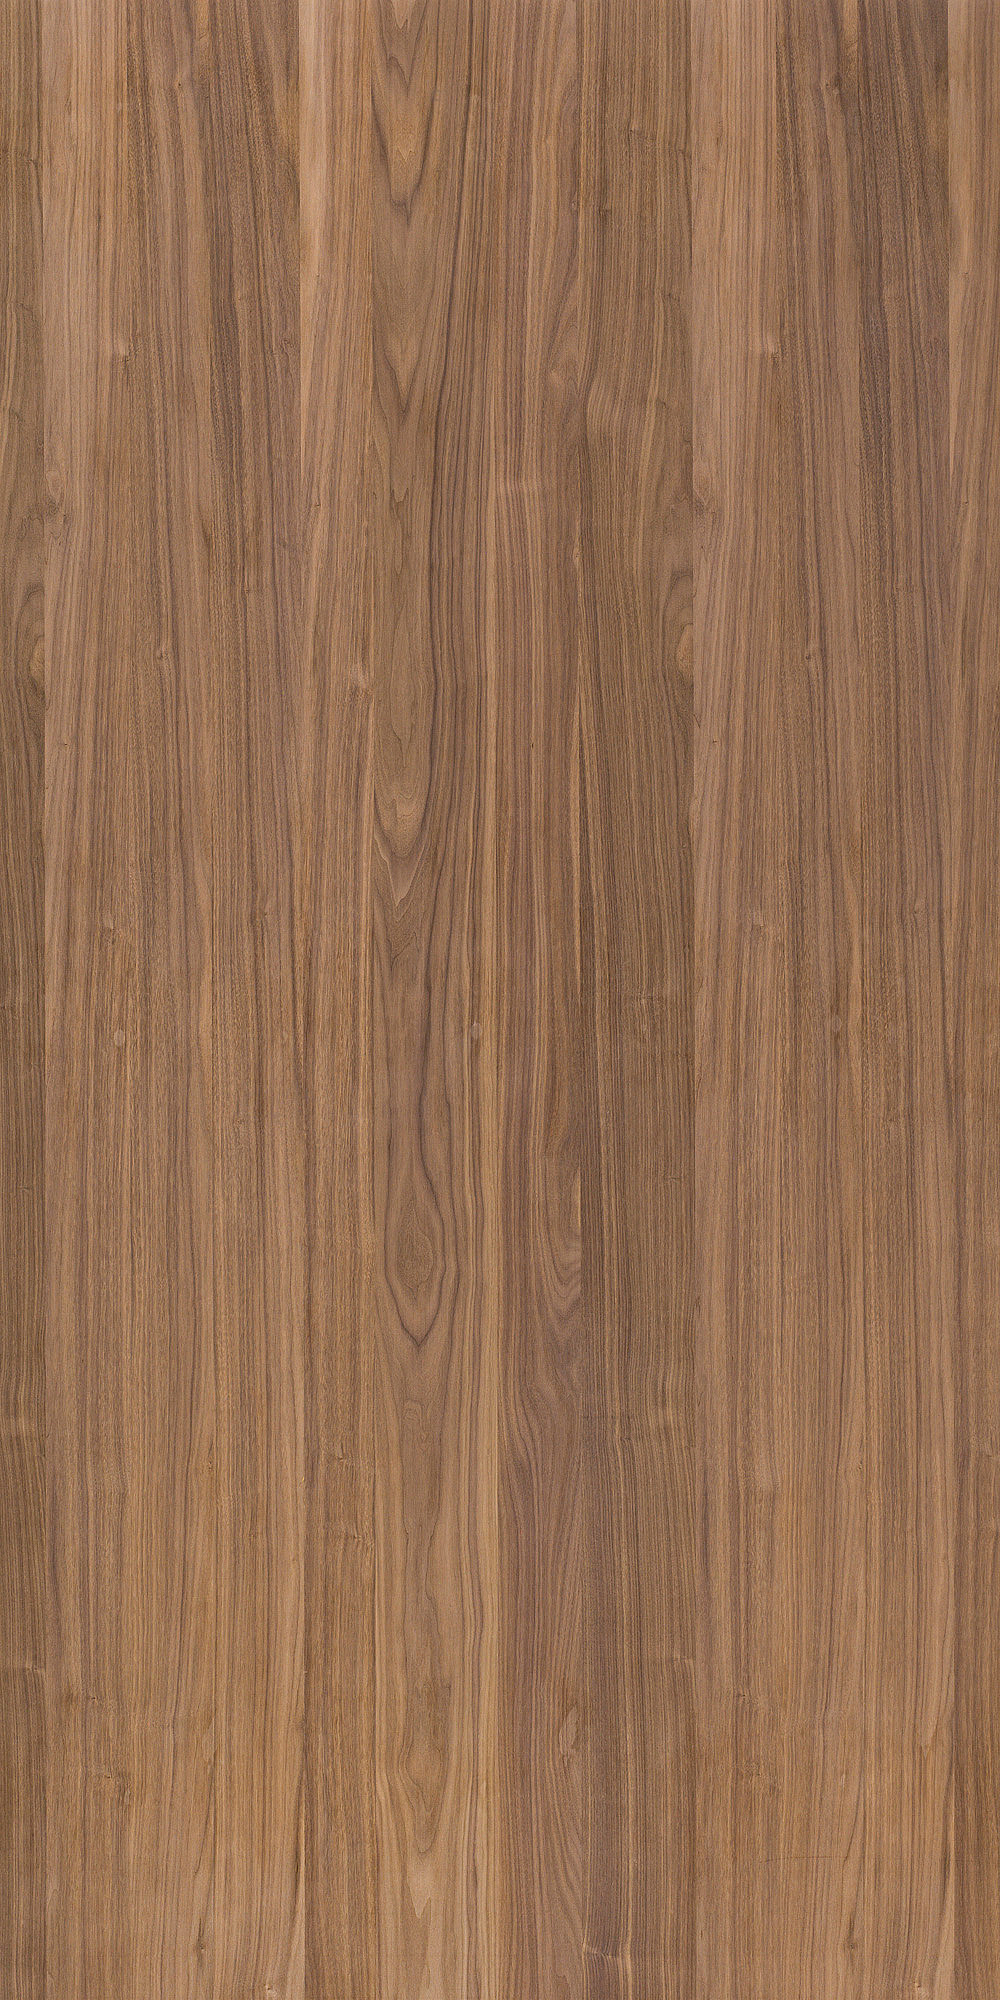 Wood specie: American Walnut<br />Slicing technique: QUARTER and CROWN CUT<br />Jointing technique: MIX-MATCHED